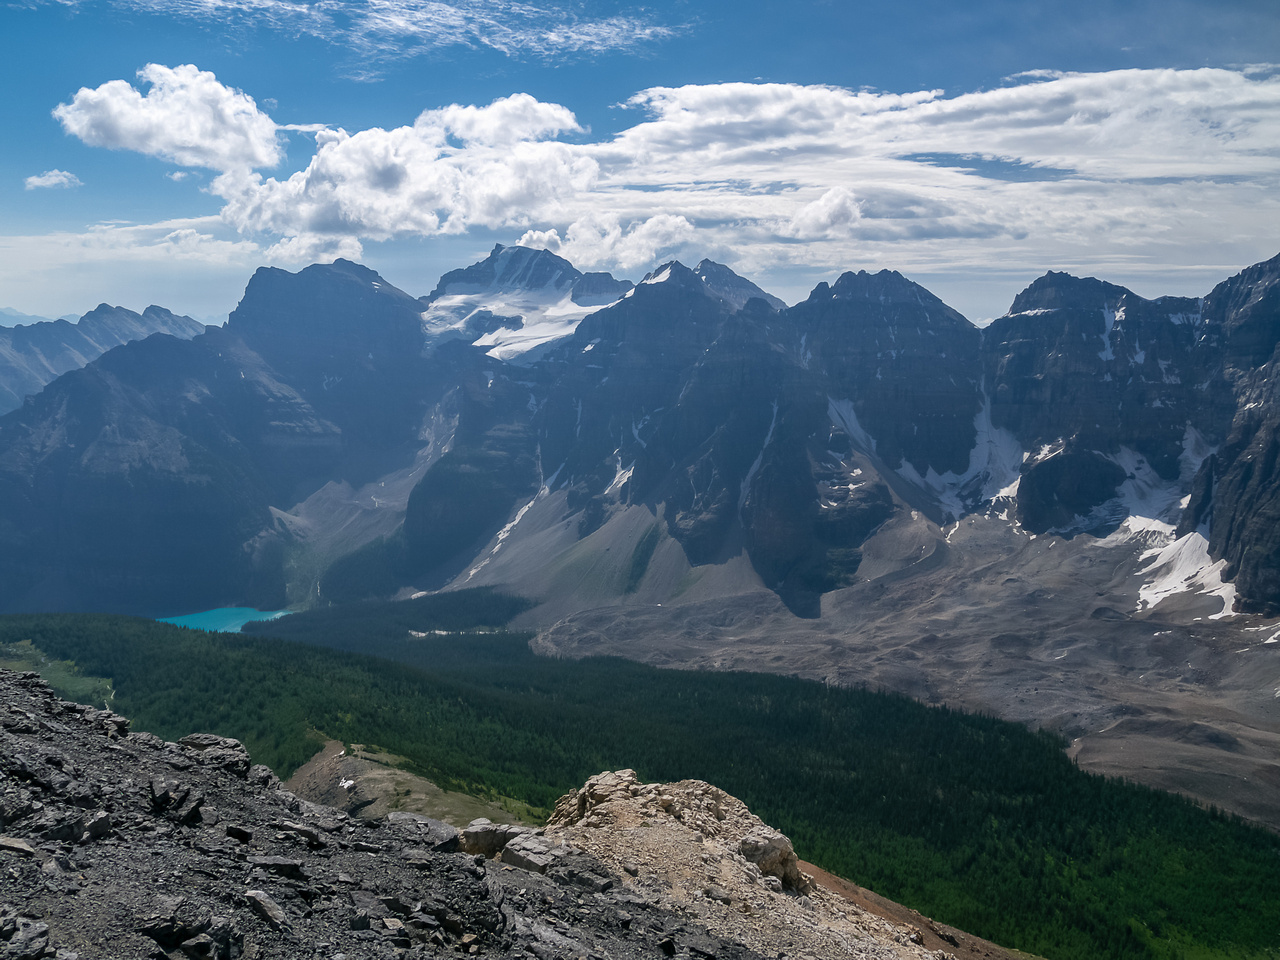 Part way up the east ridge of Eiffel, looking back down my ascent route at left and even a glimpse of Moraine Lake at center left with Mount Fay looming above.